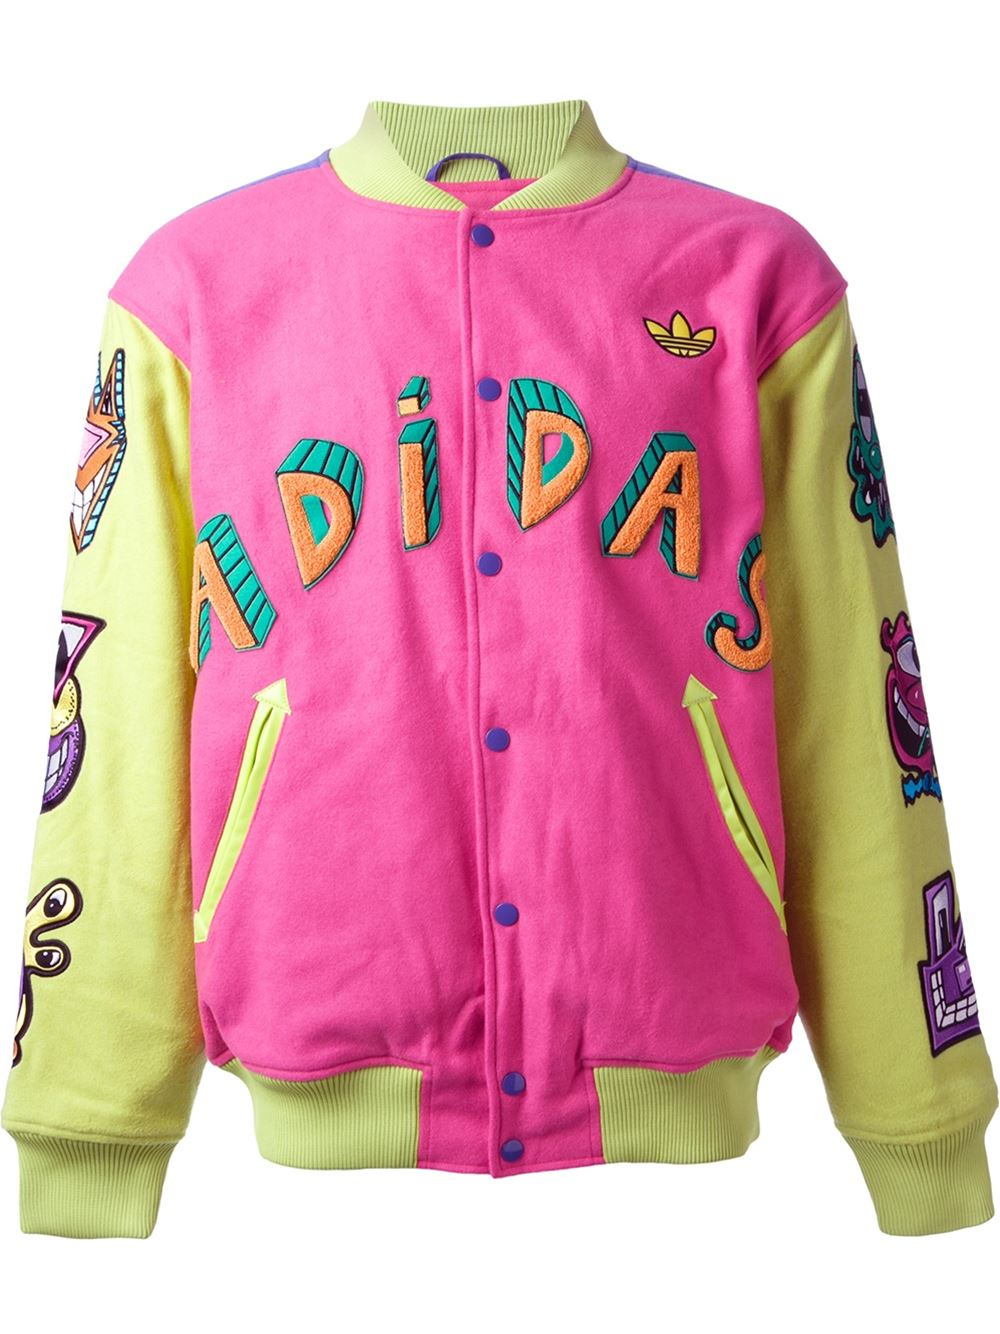 6308f2fc442a adidas Jeremy Scott Embroidered Bomber Jacket in Pink for Men - Lyst